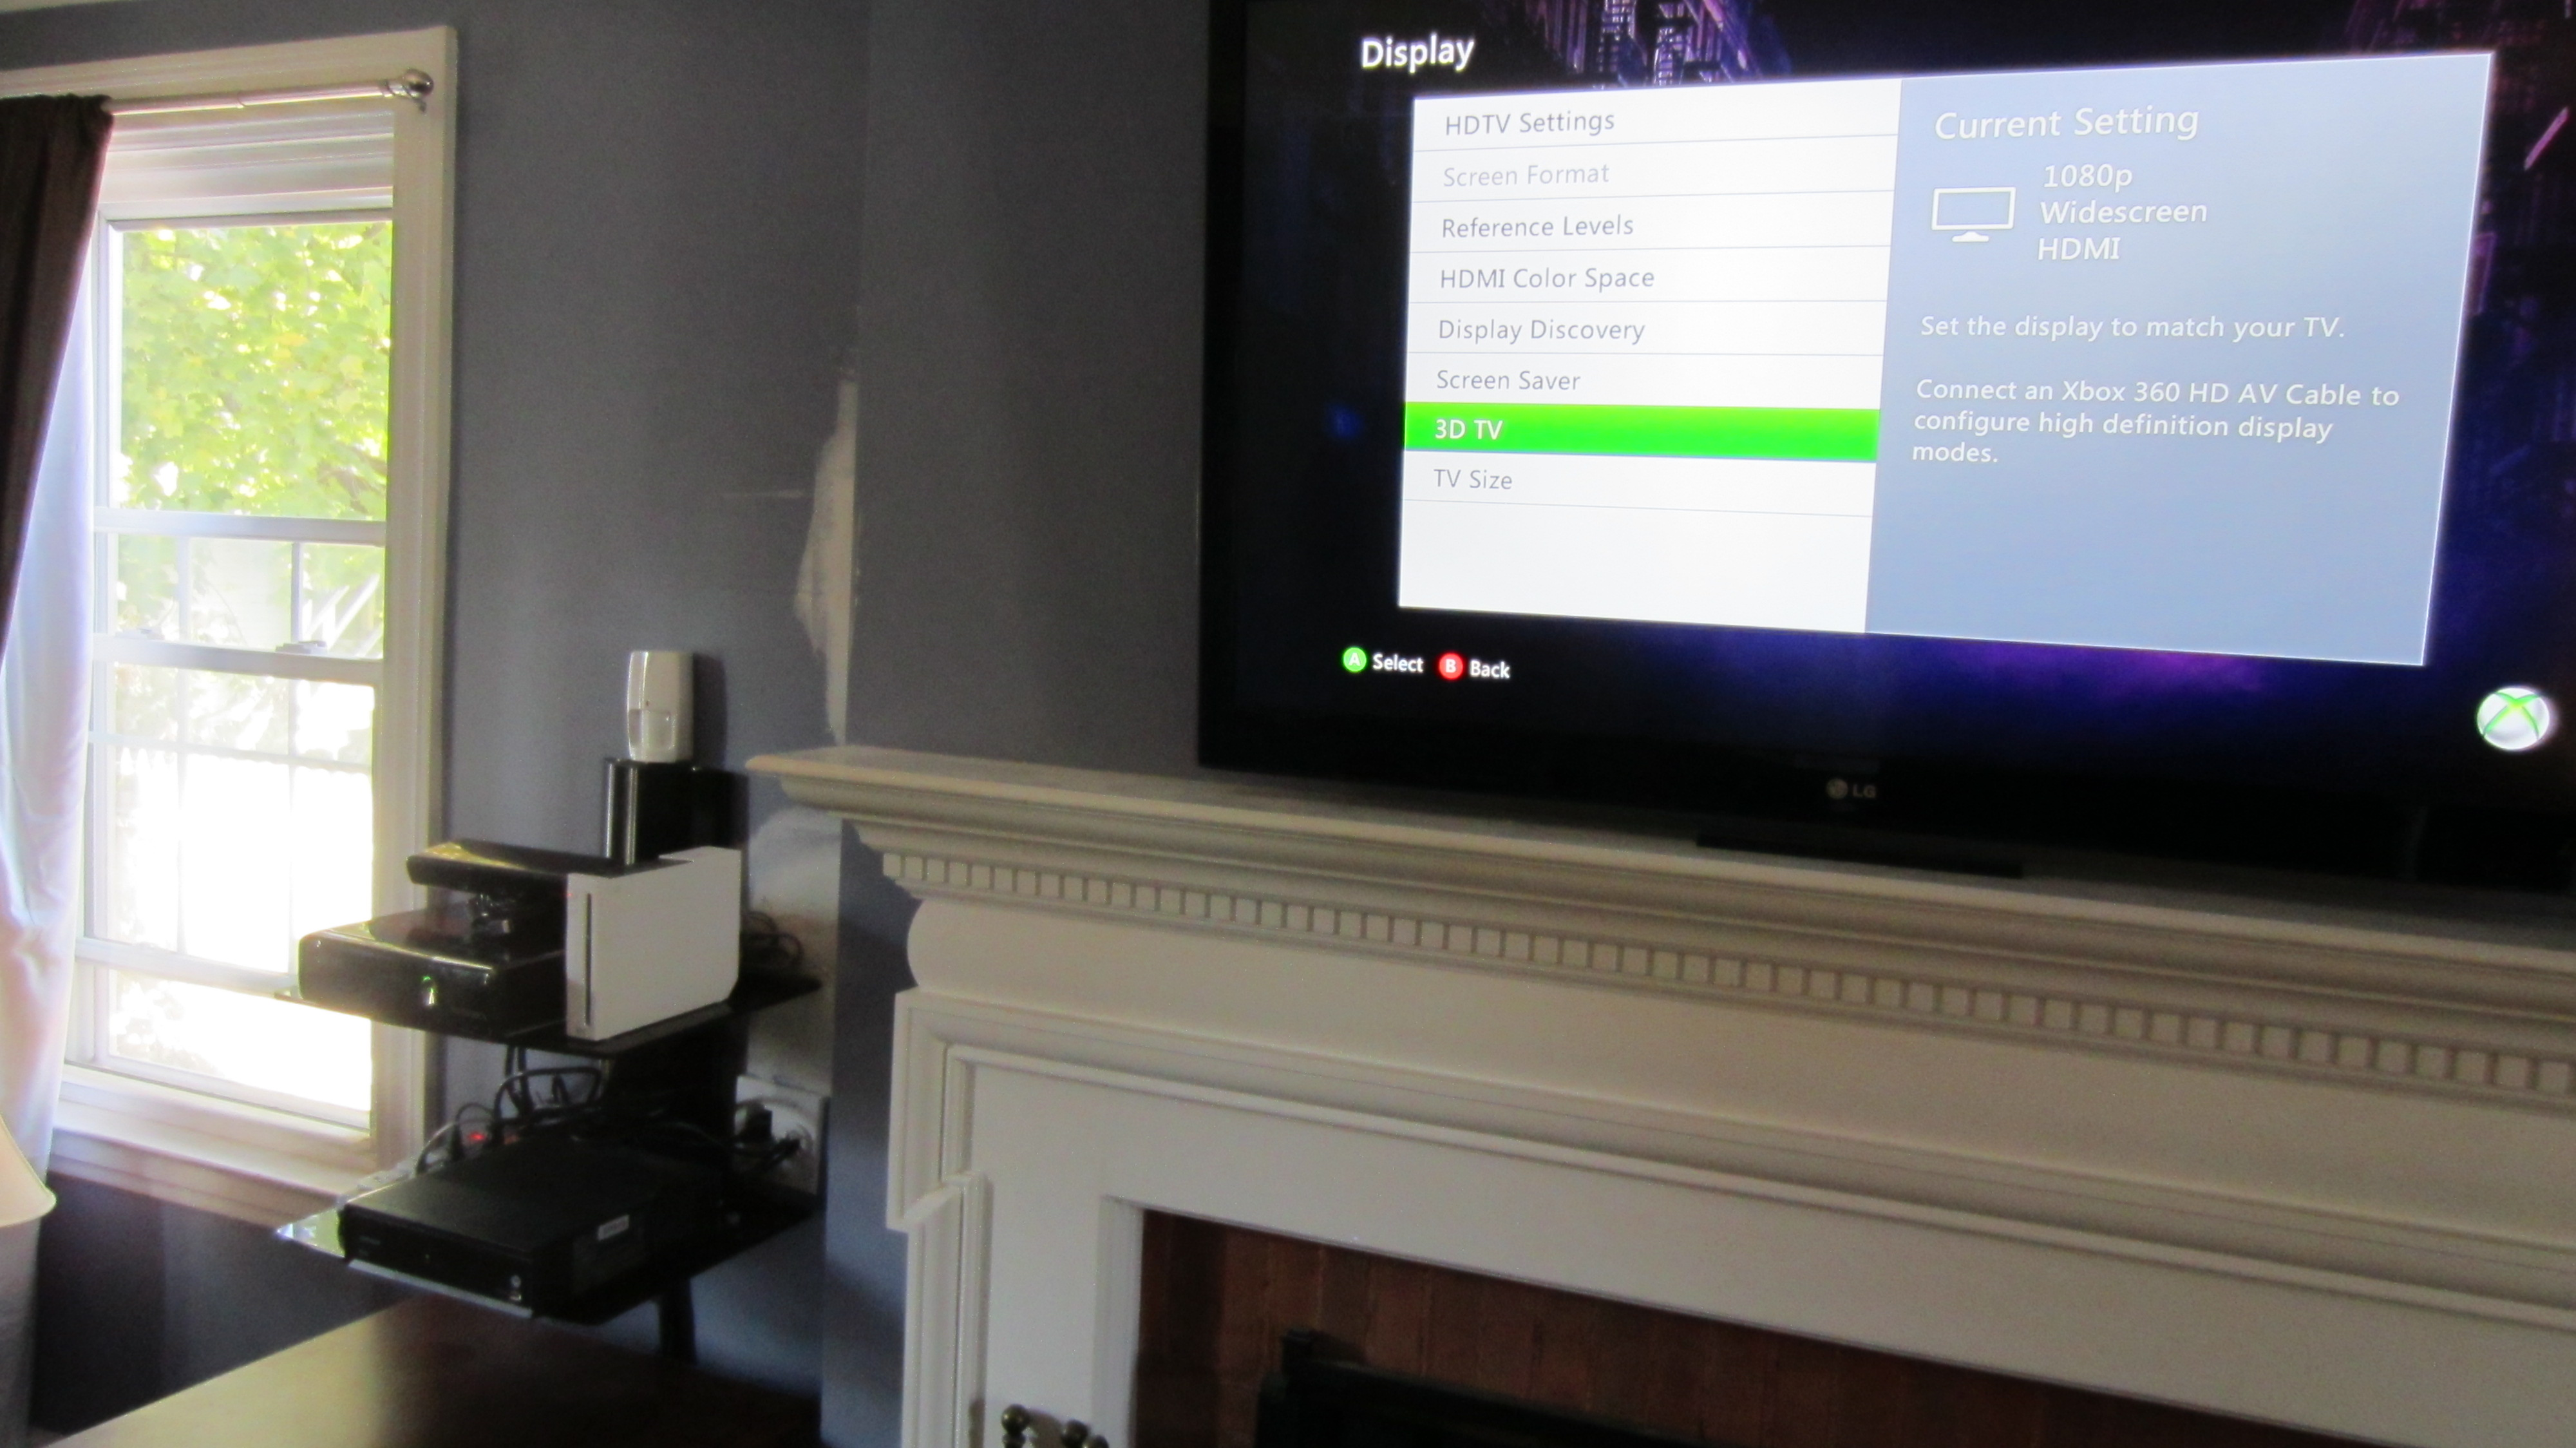 Bristol Ct Mount My Tv On Wall Home Theater Installation Wiring With Cable Box Over Fireplace Wires Concealed 8